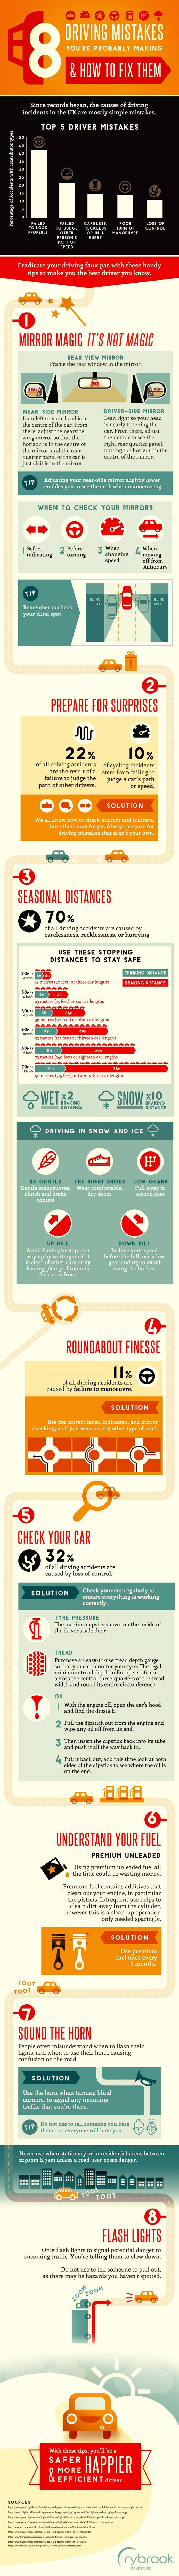 8 driving mistakes you didn t know you were making infographic